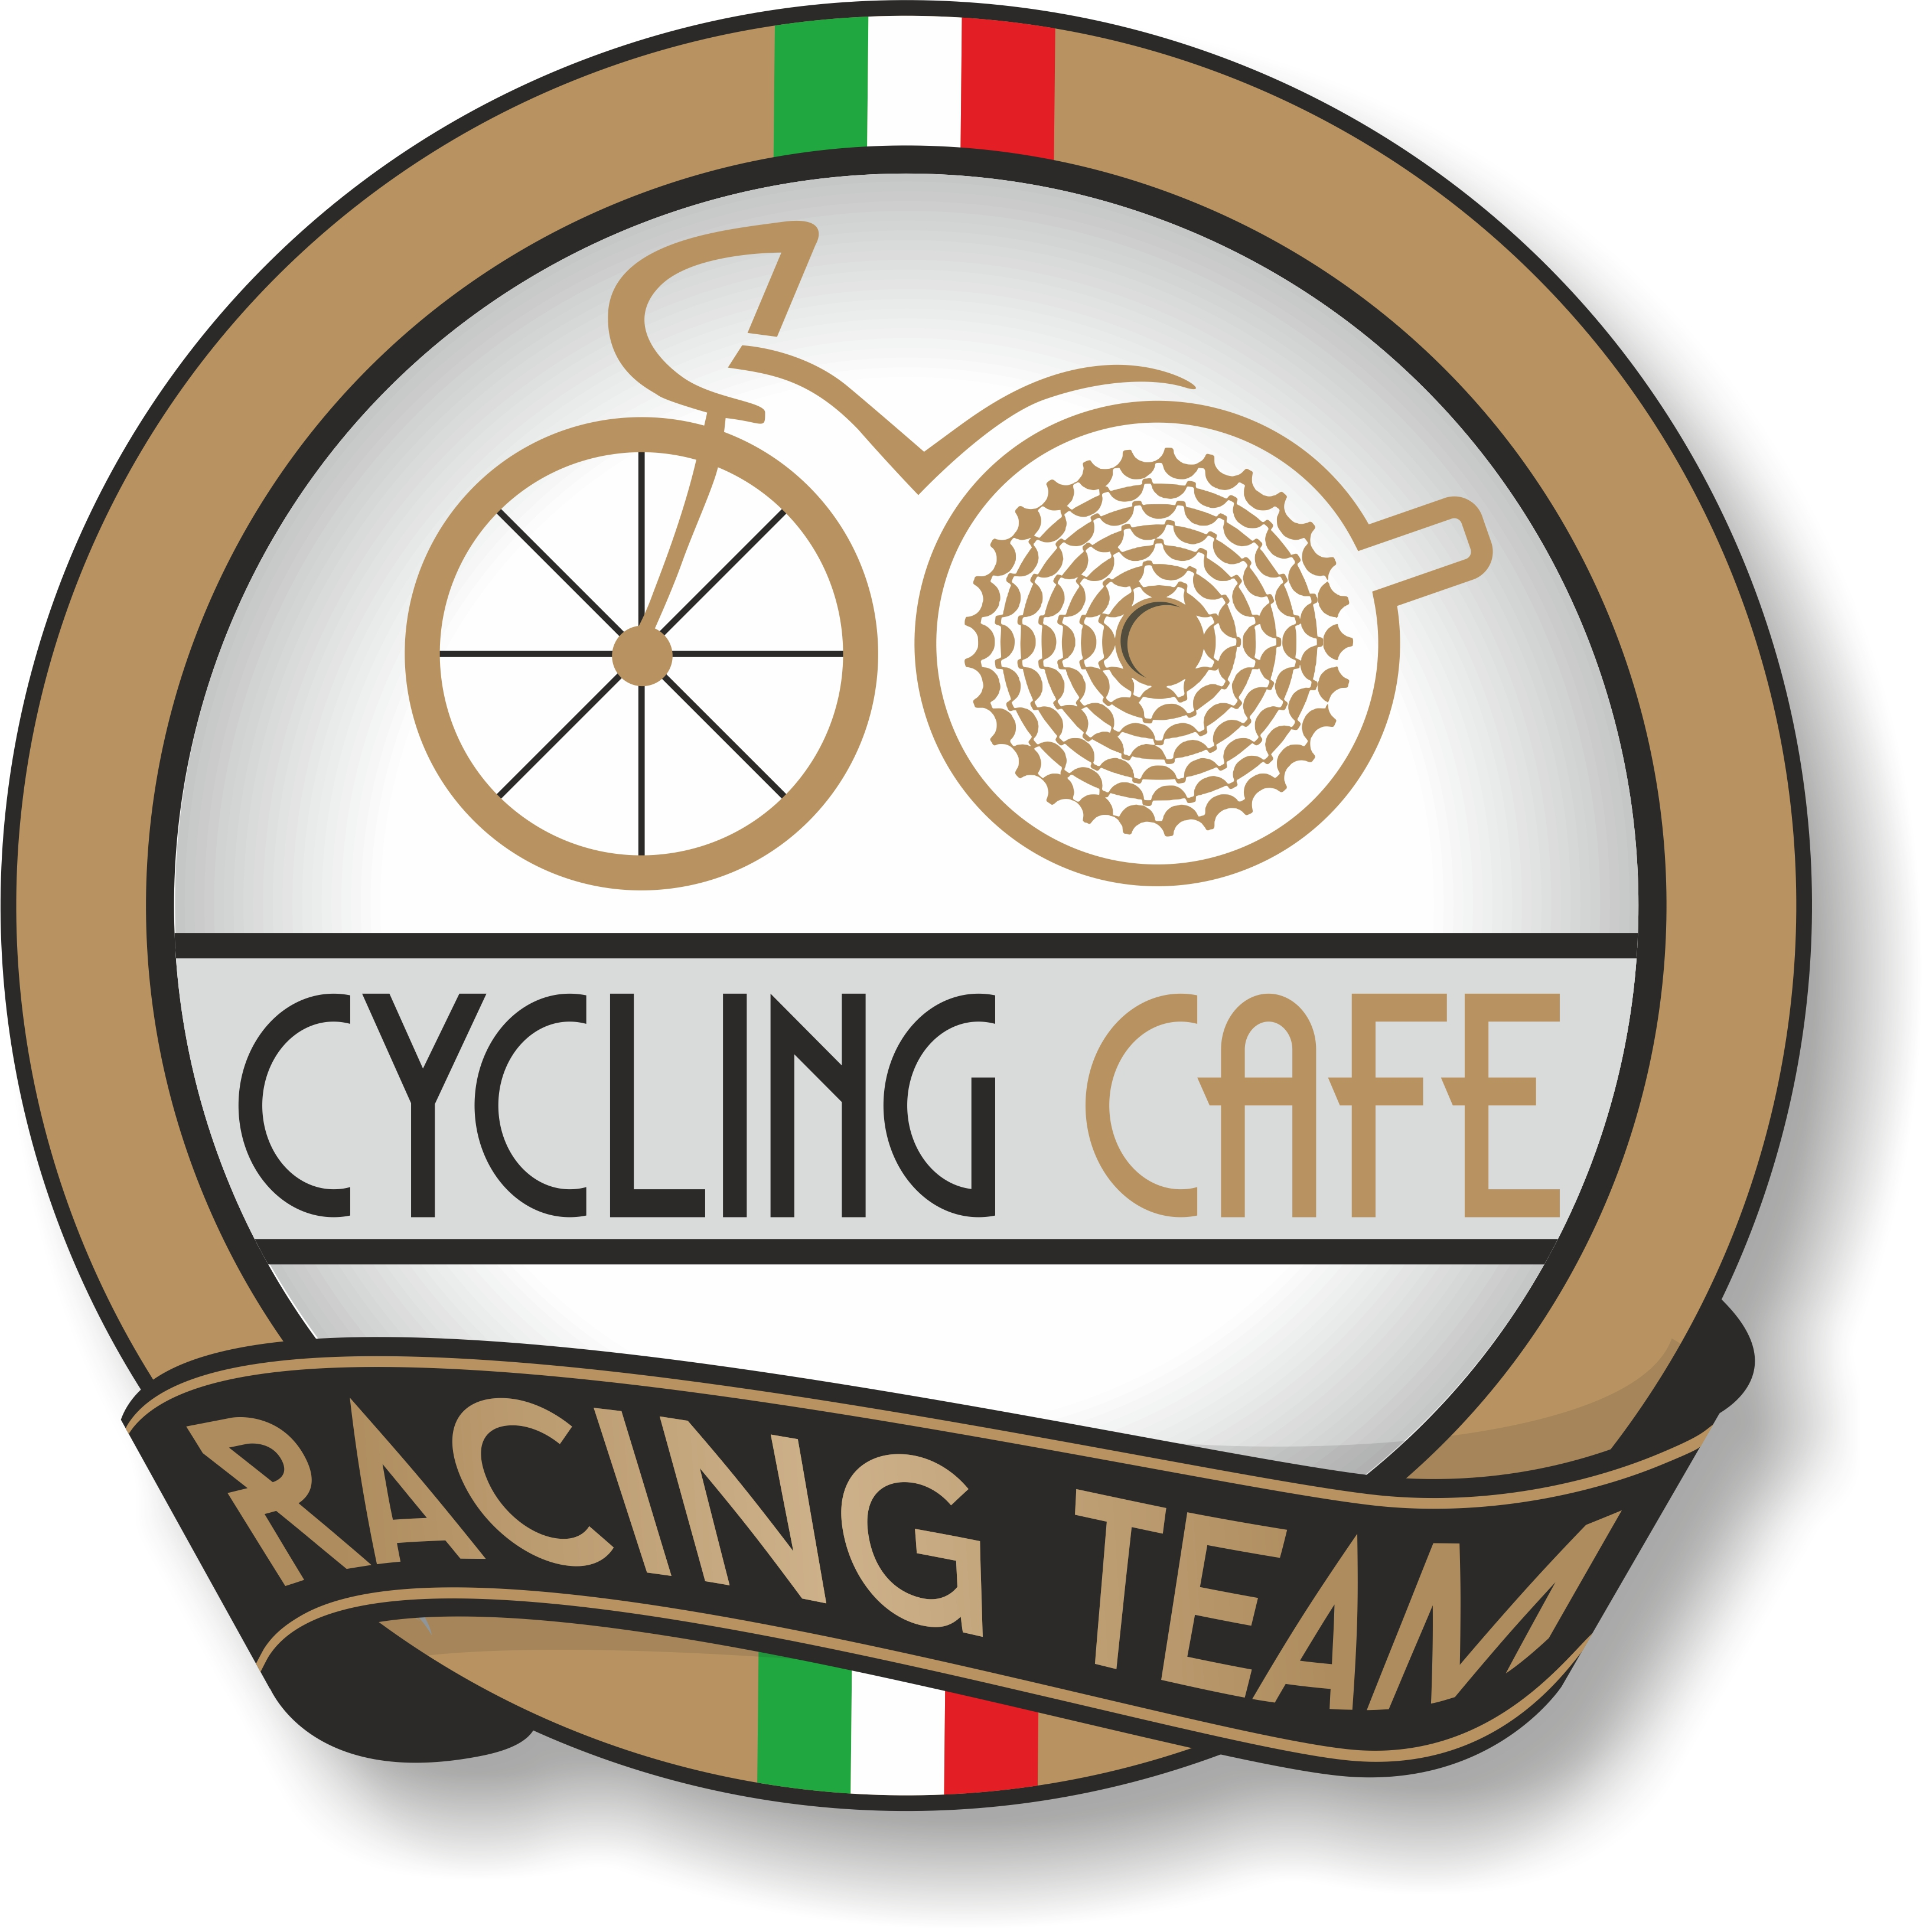 Cycling Cafè Racing